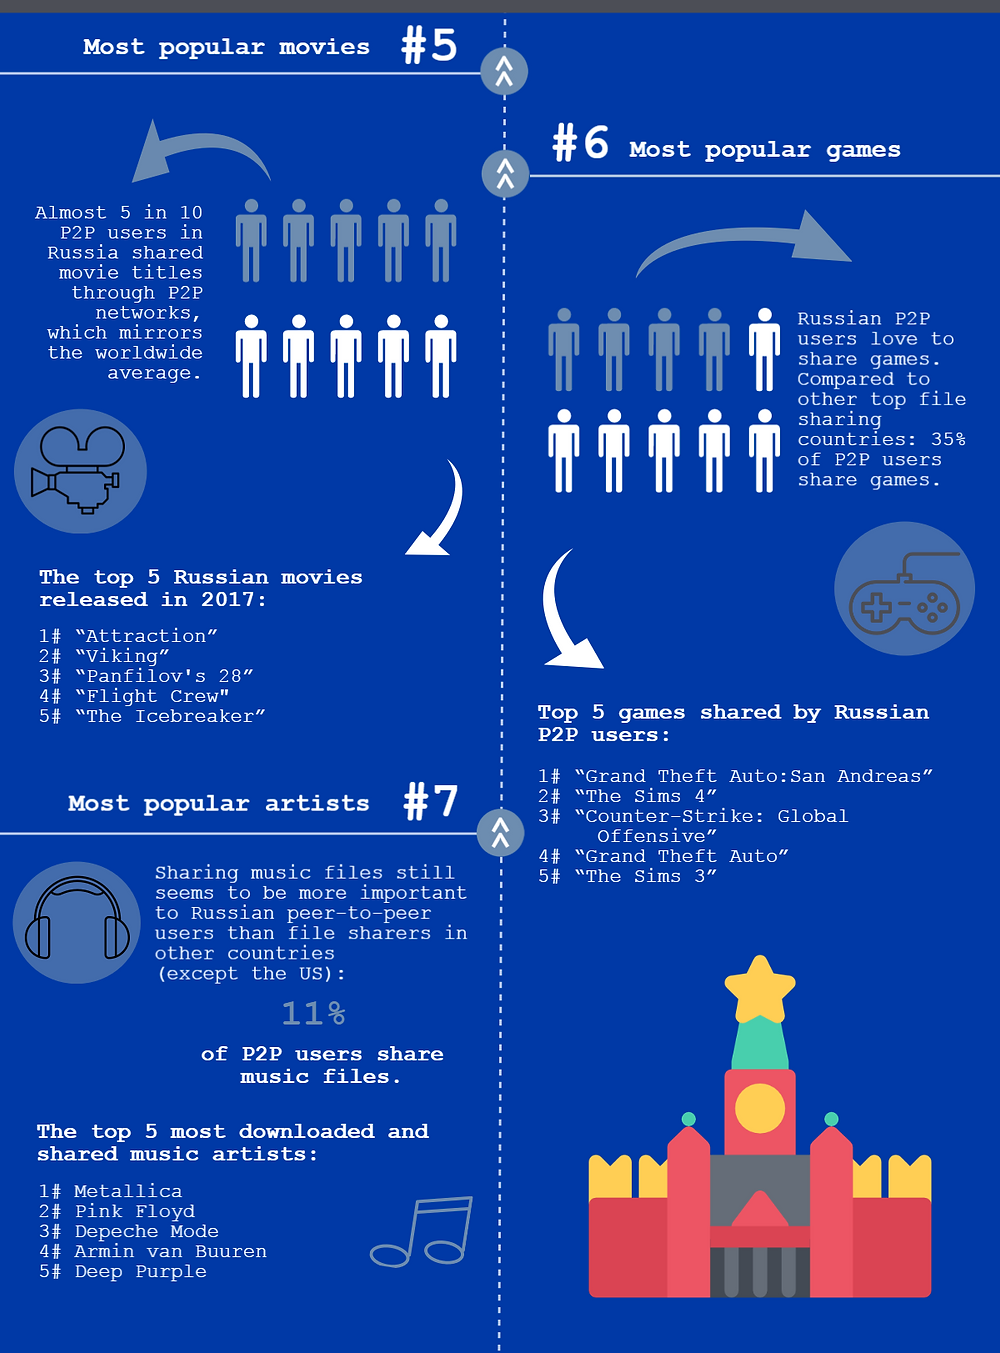 TECXIPIO infographic. 2nd part: Fact #5-7 about peer-to-peer users in Russia